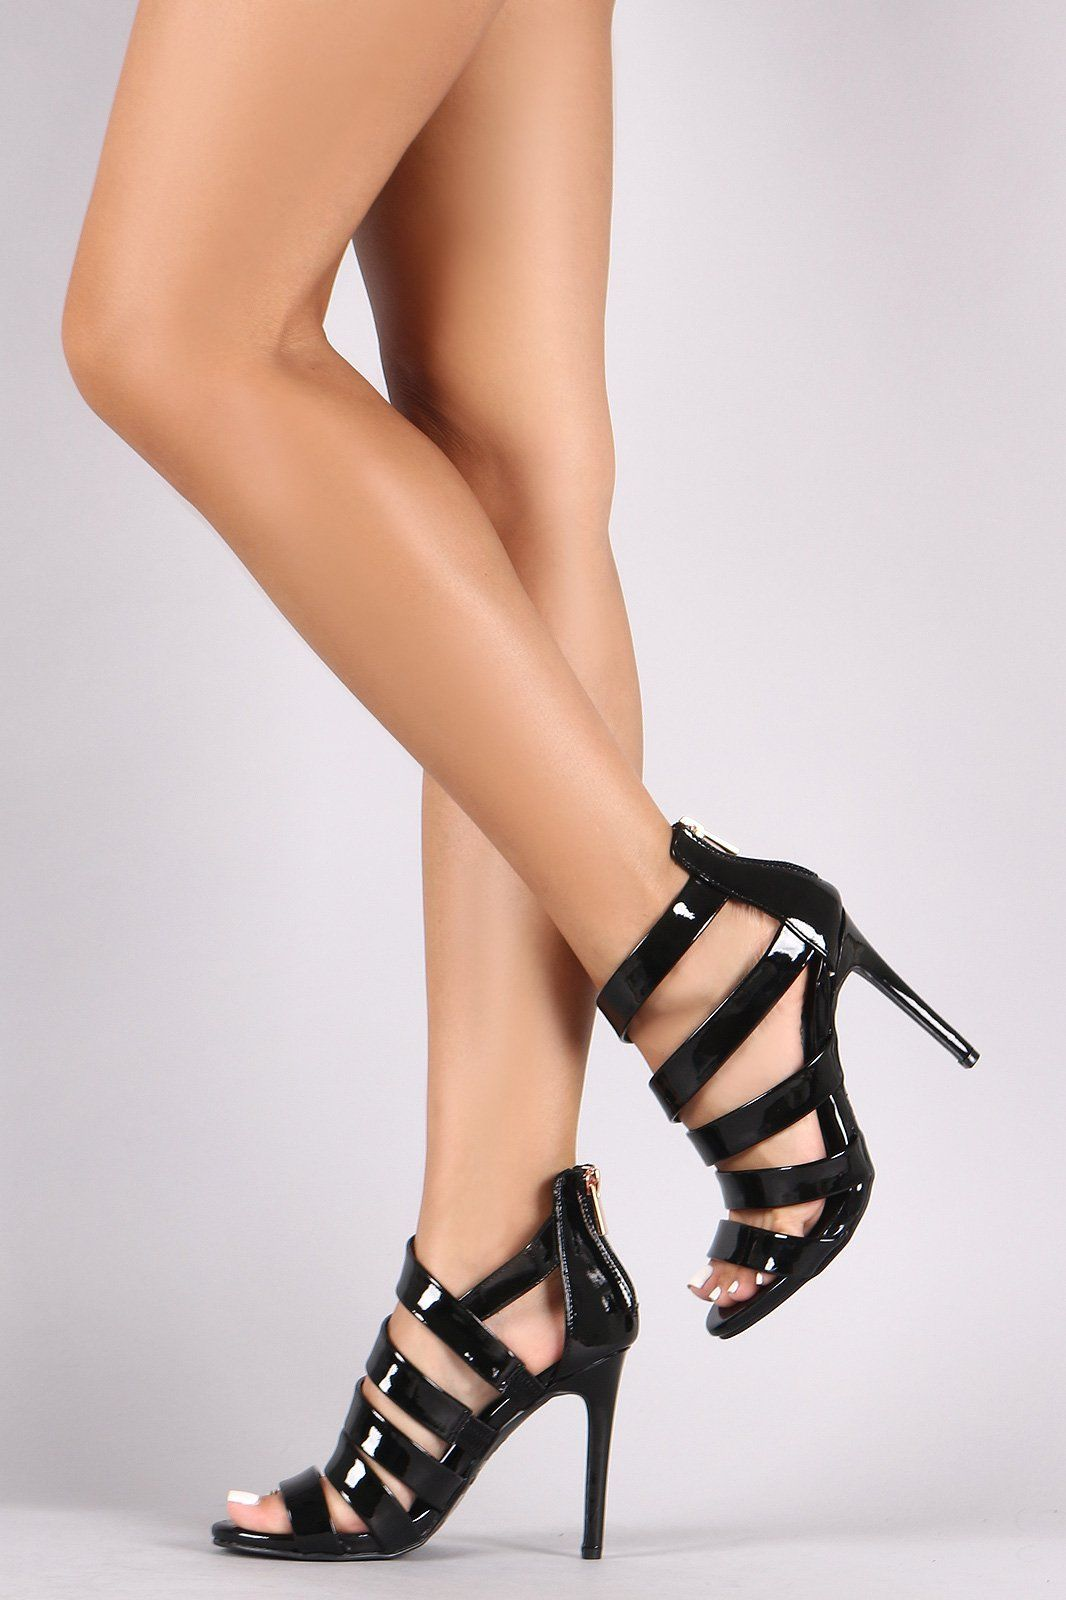 Anne Michelle WomensLadies High Heel Cut Out Shoes With Buckle Ankle Strap  VF1MOSSSW